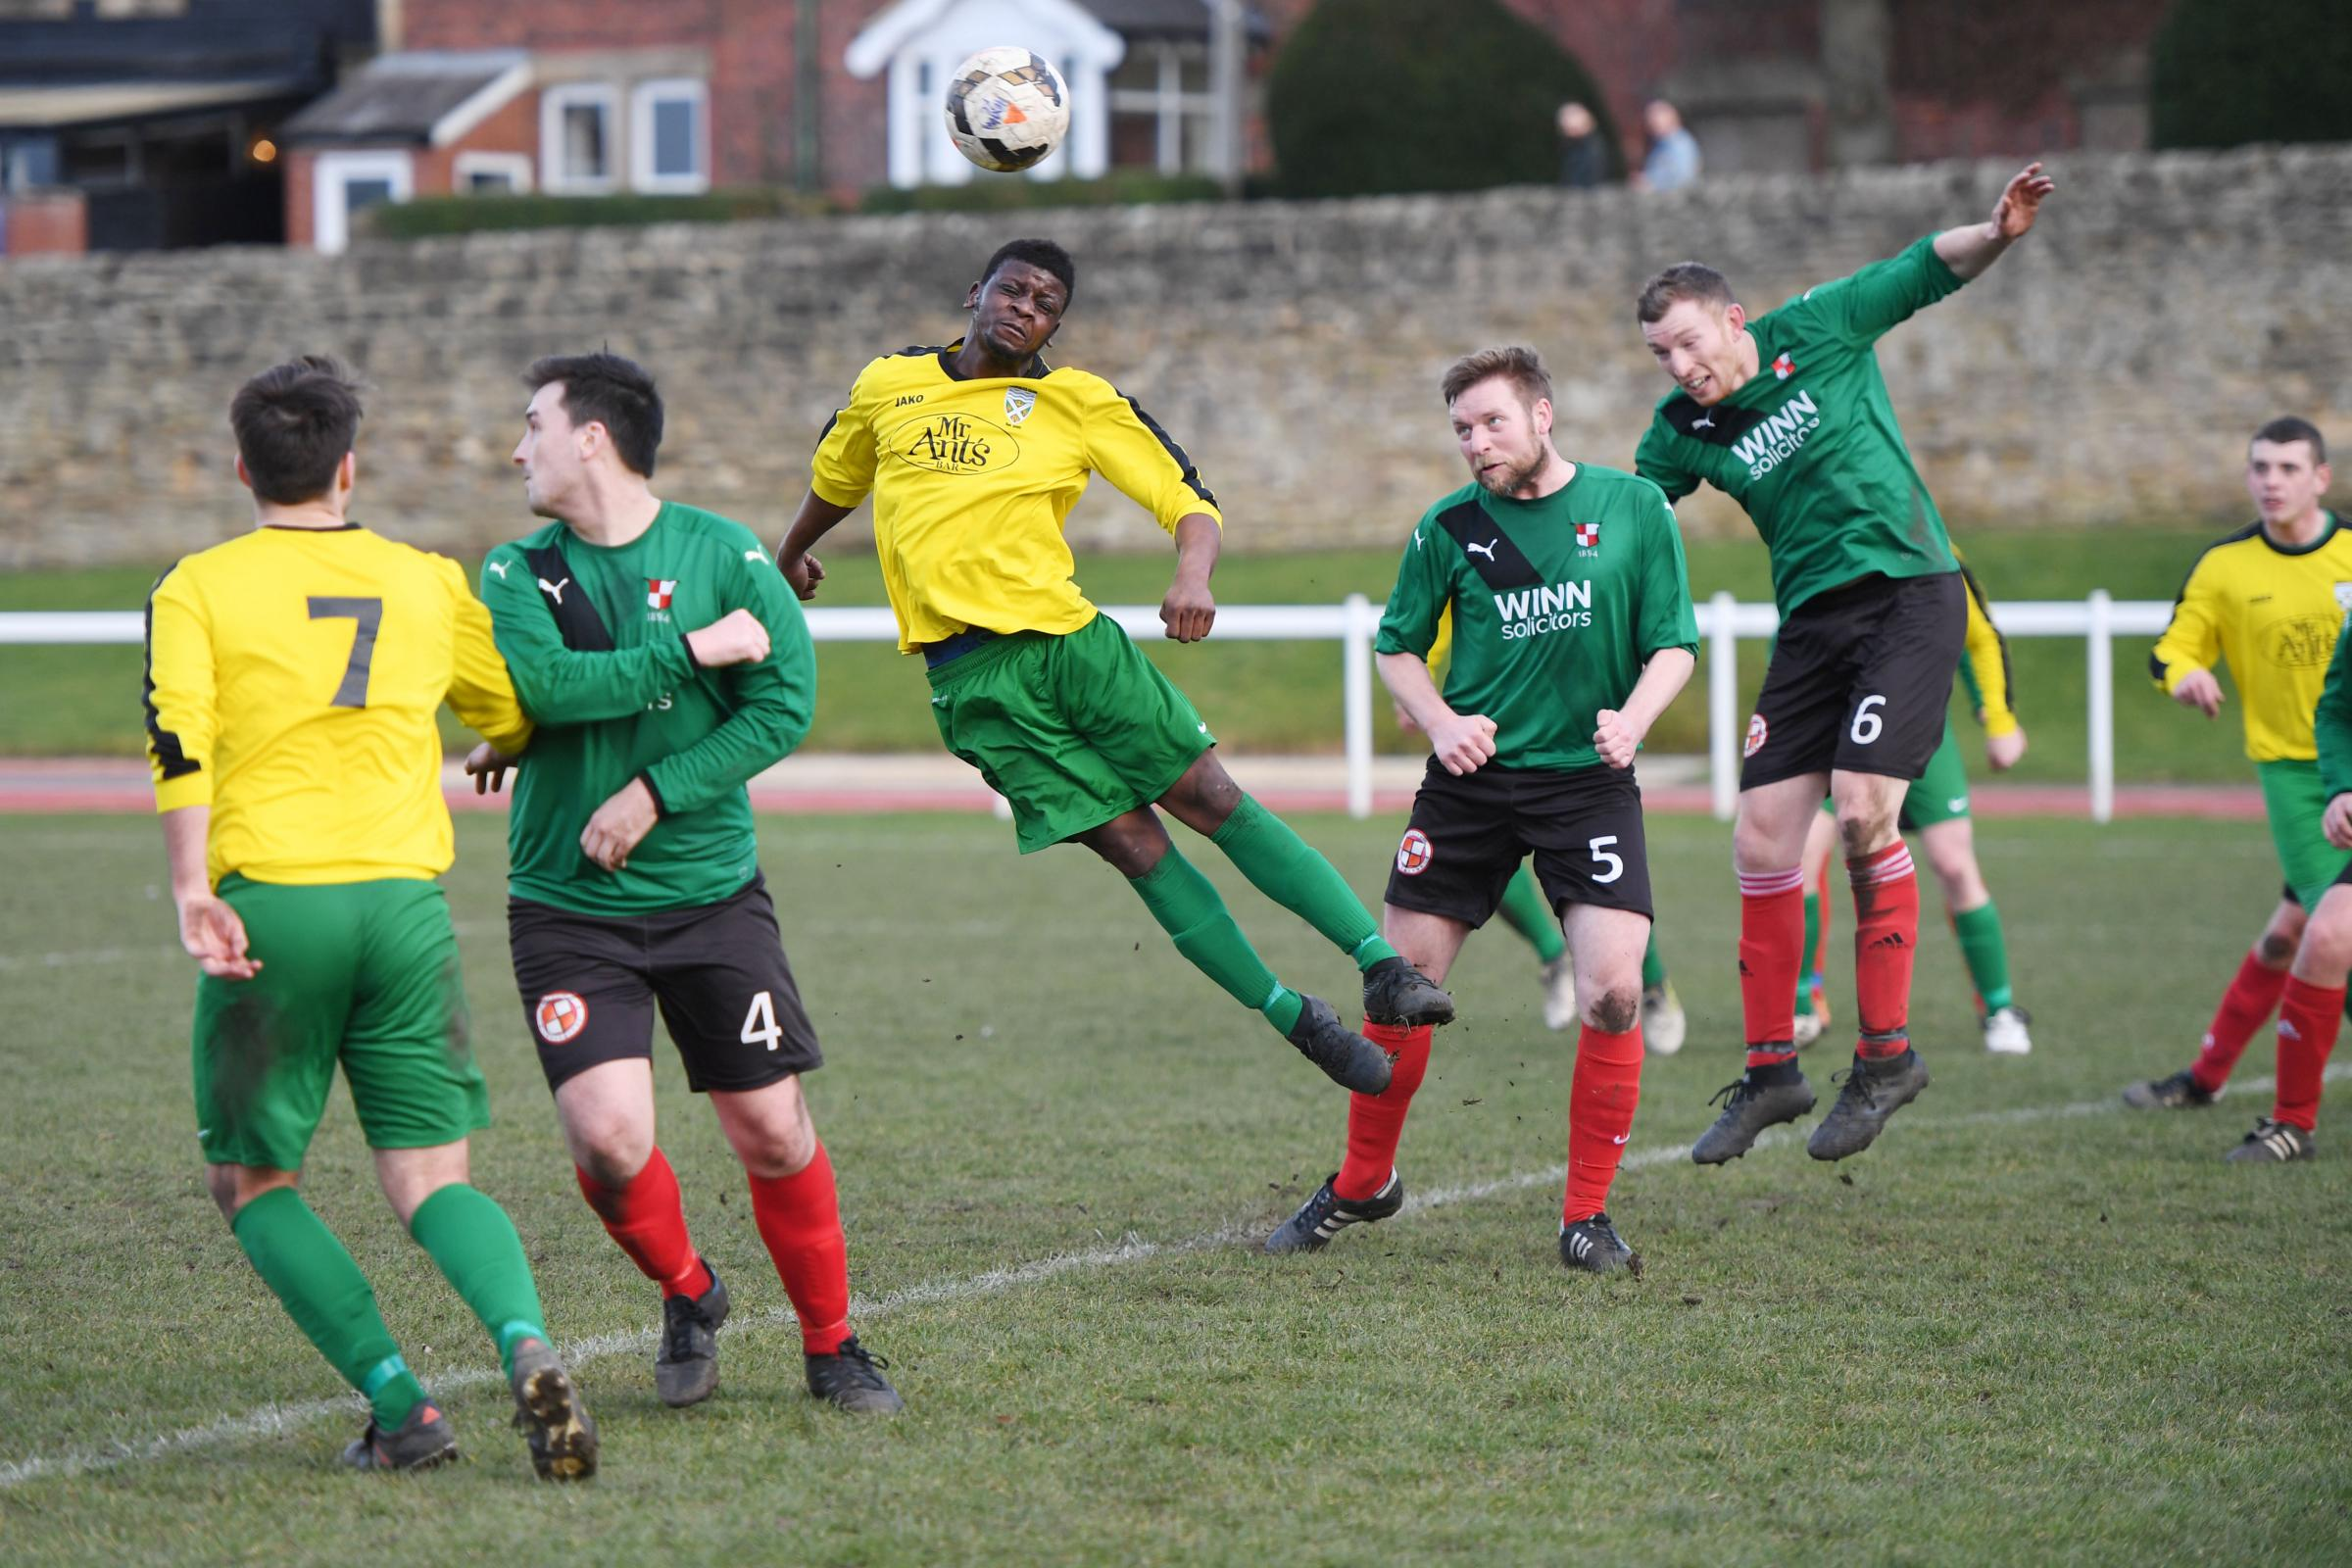 Dylan Mabunu (centre) scored two goals for Hexham in their 3-2 victory over Seaton Burn. Photo: KATE BUCKINGHAM